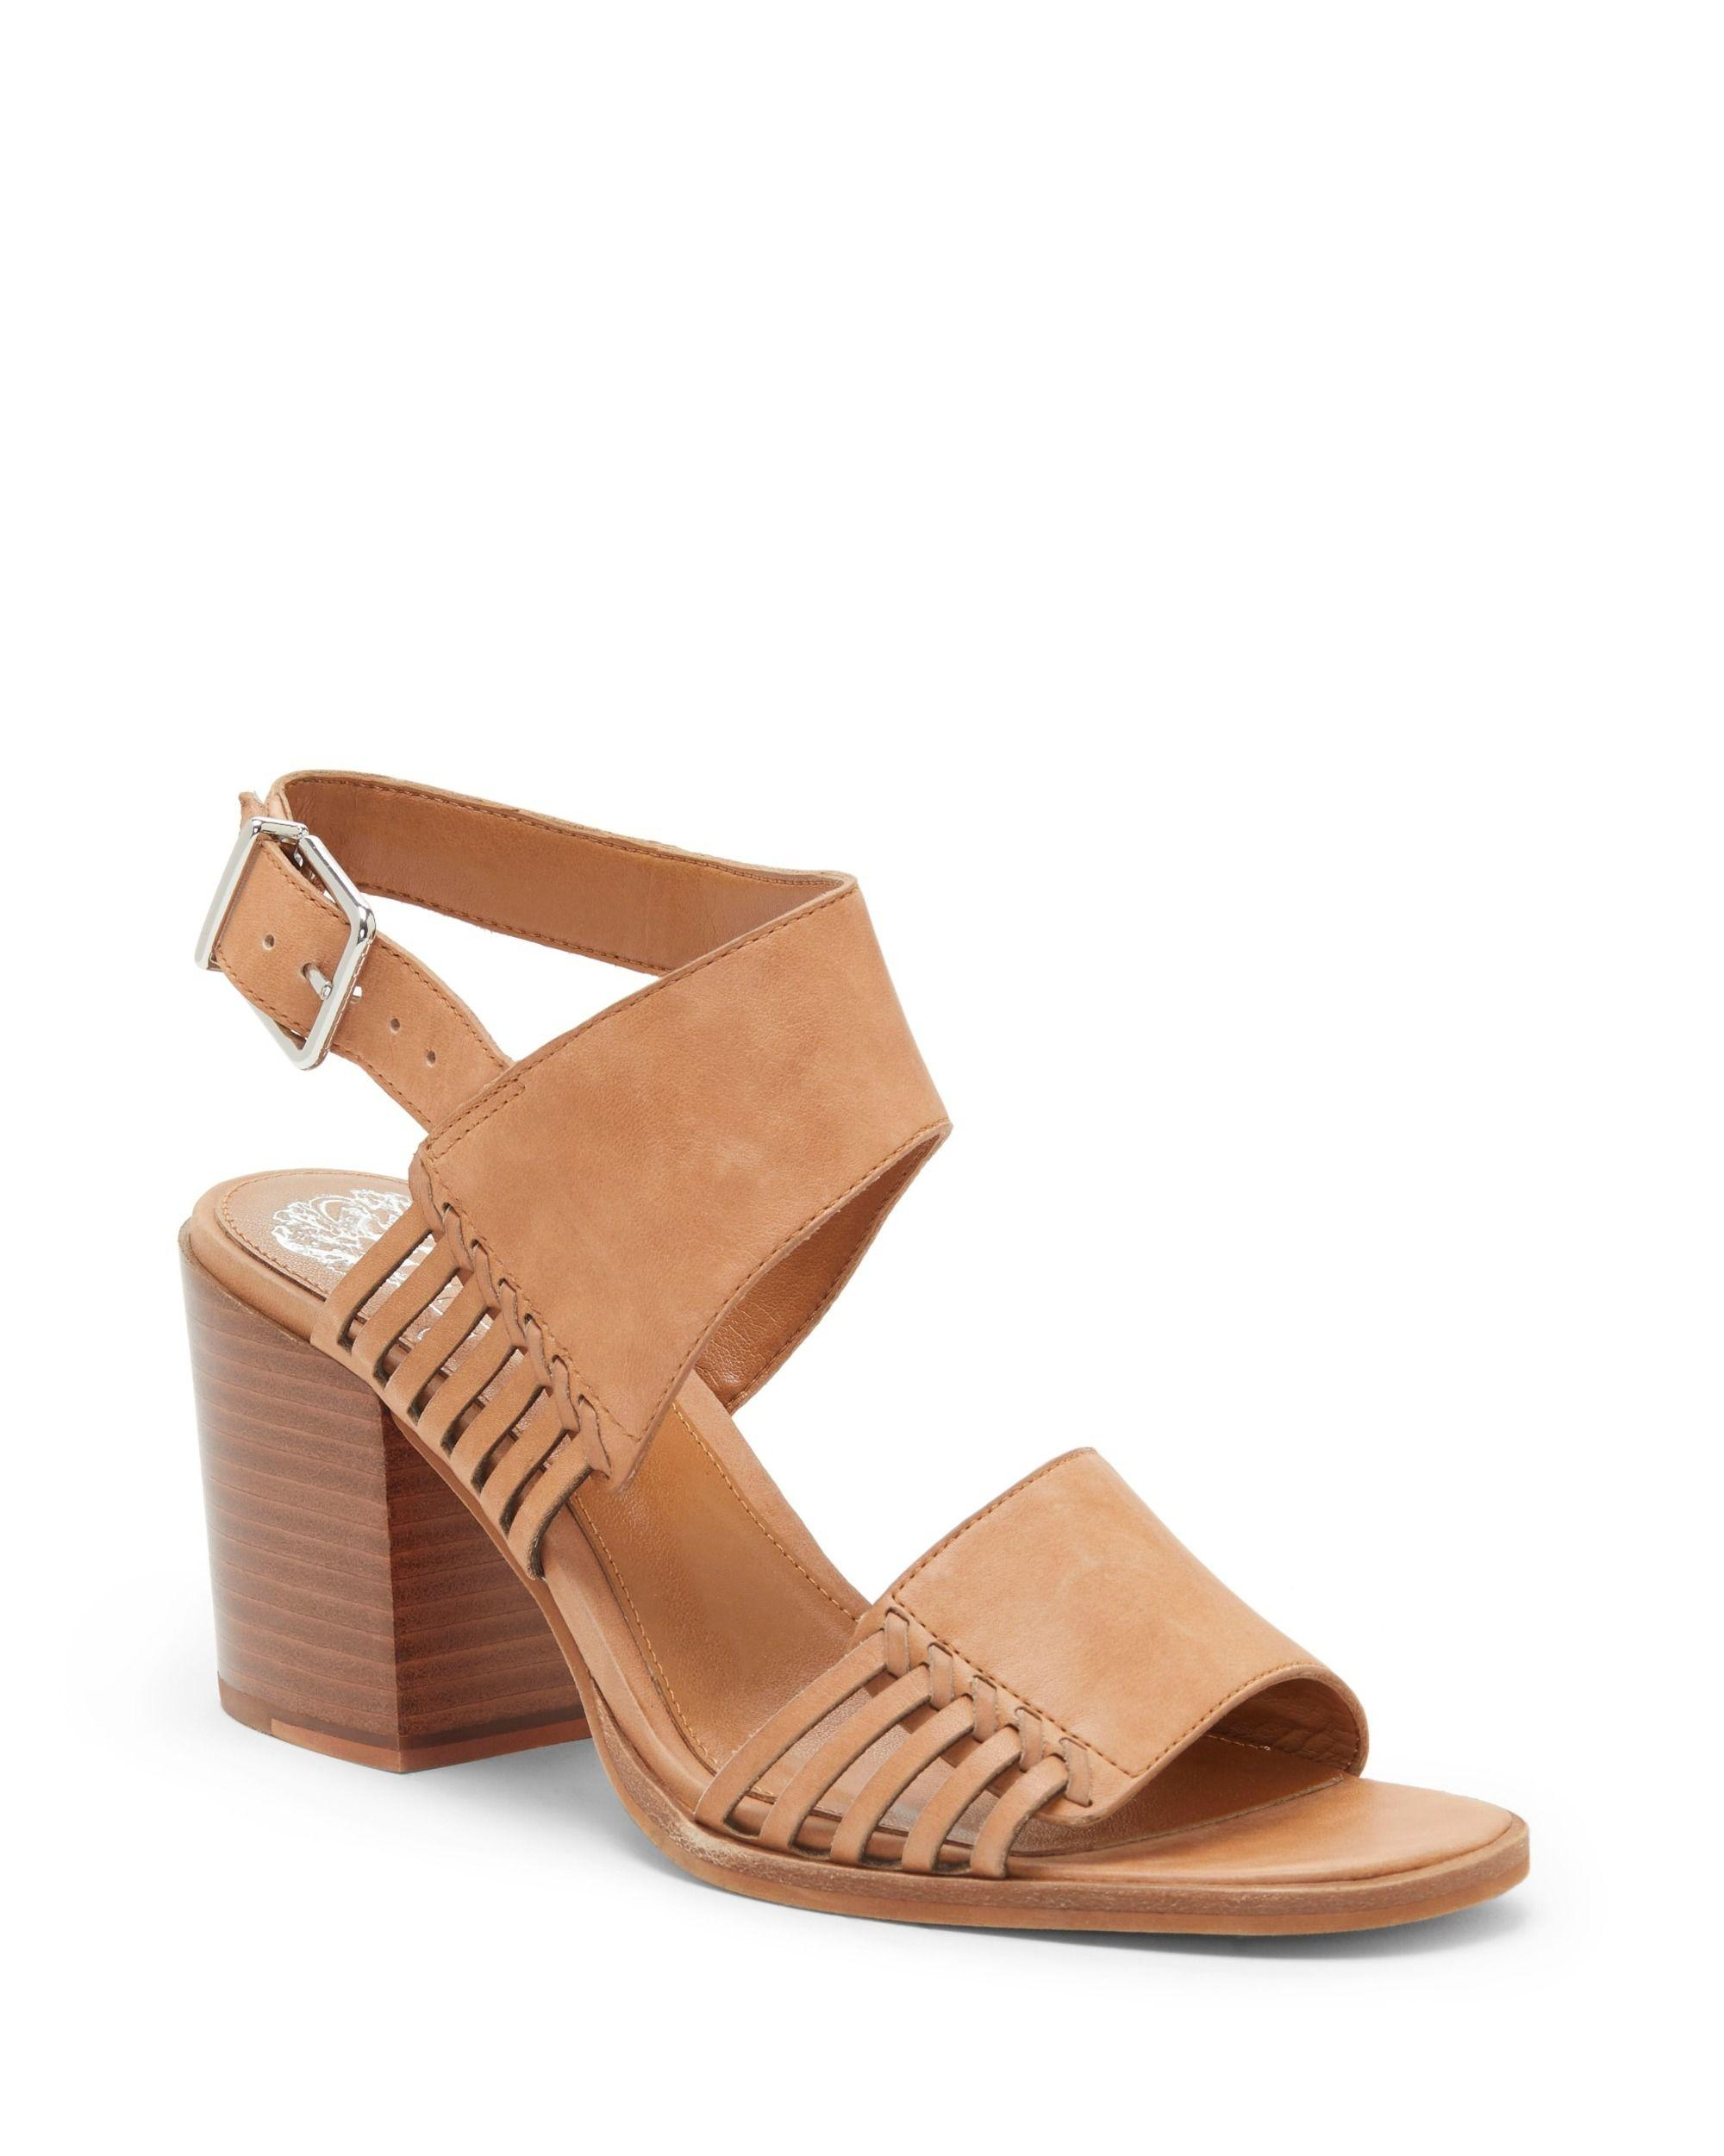 9f15f780c752 Lyst - Vince Camuto Karmelo Double Strap Sandal in Brown